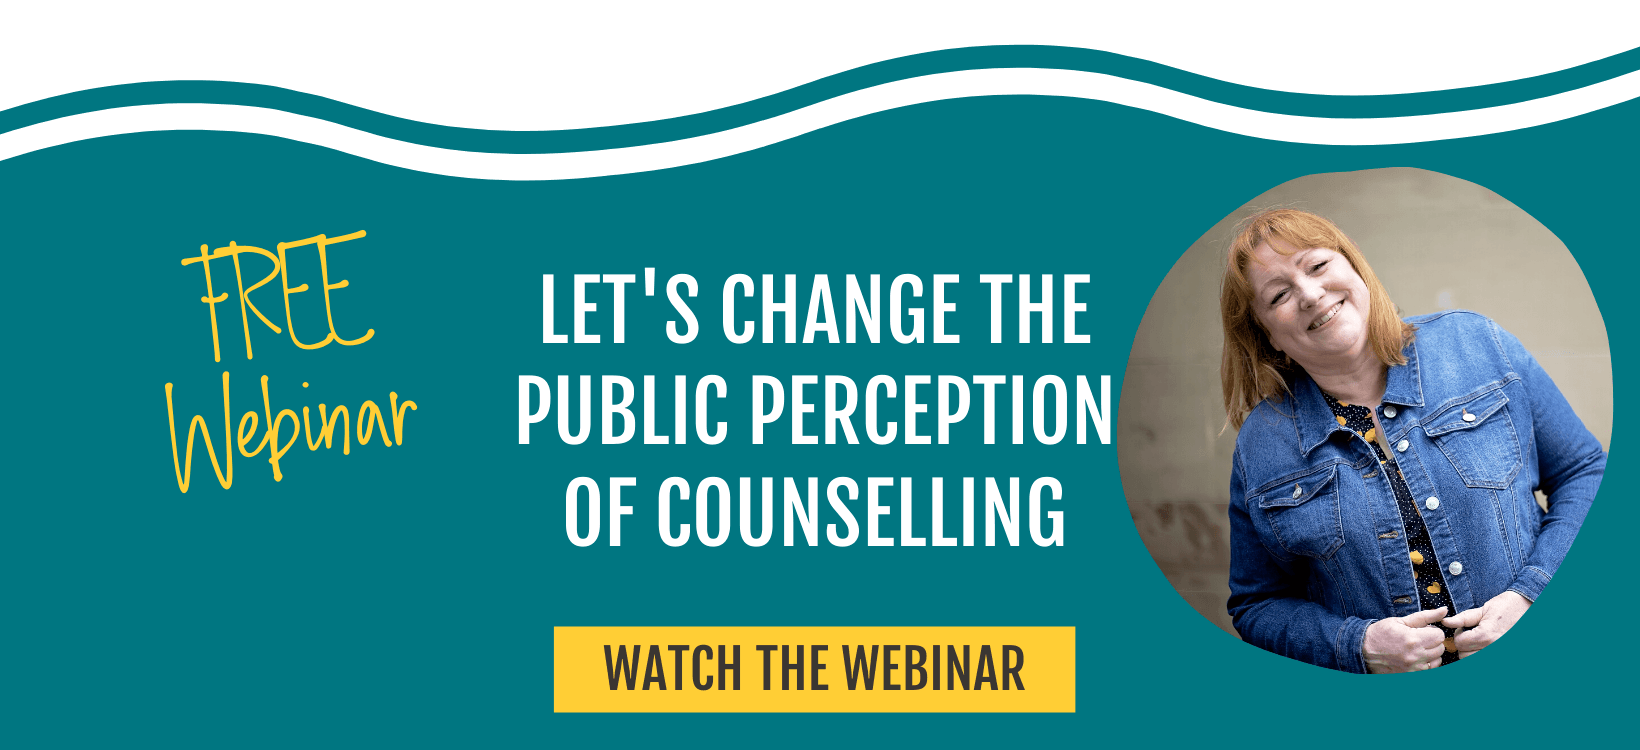 Free webinar - Let's change the public perception of counselling